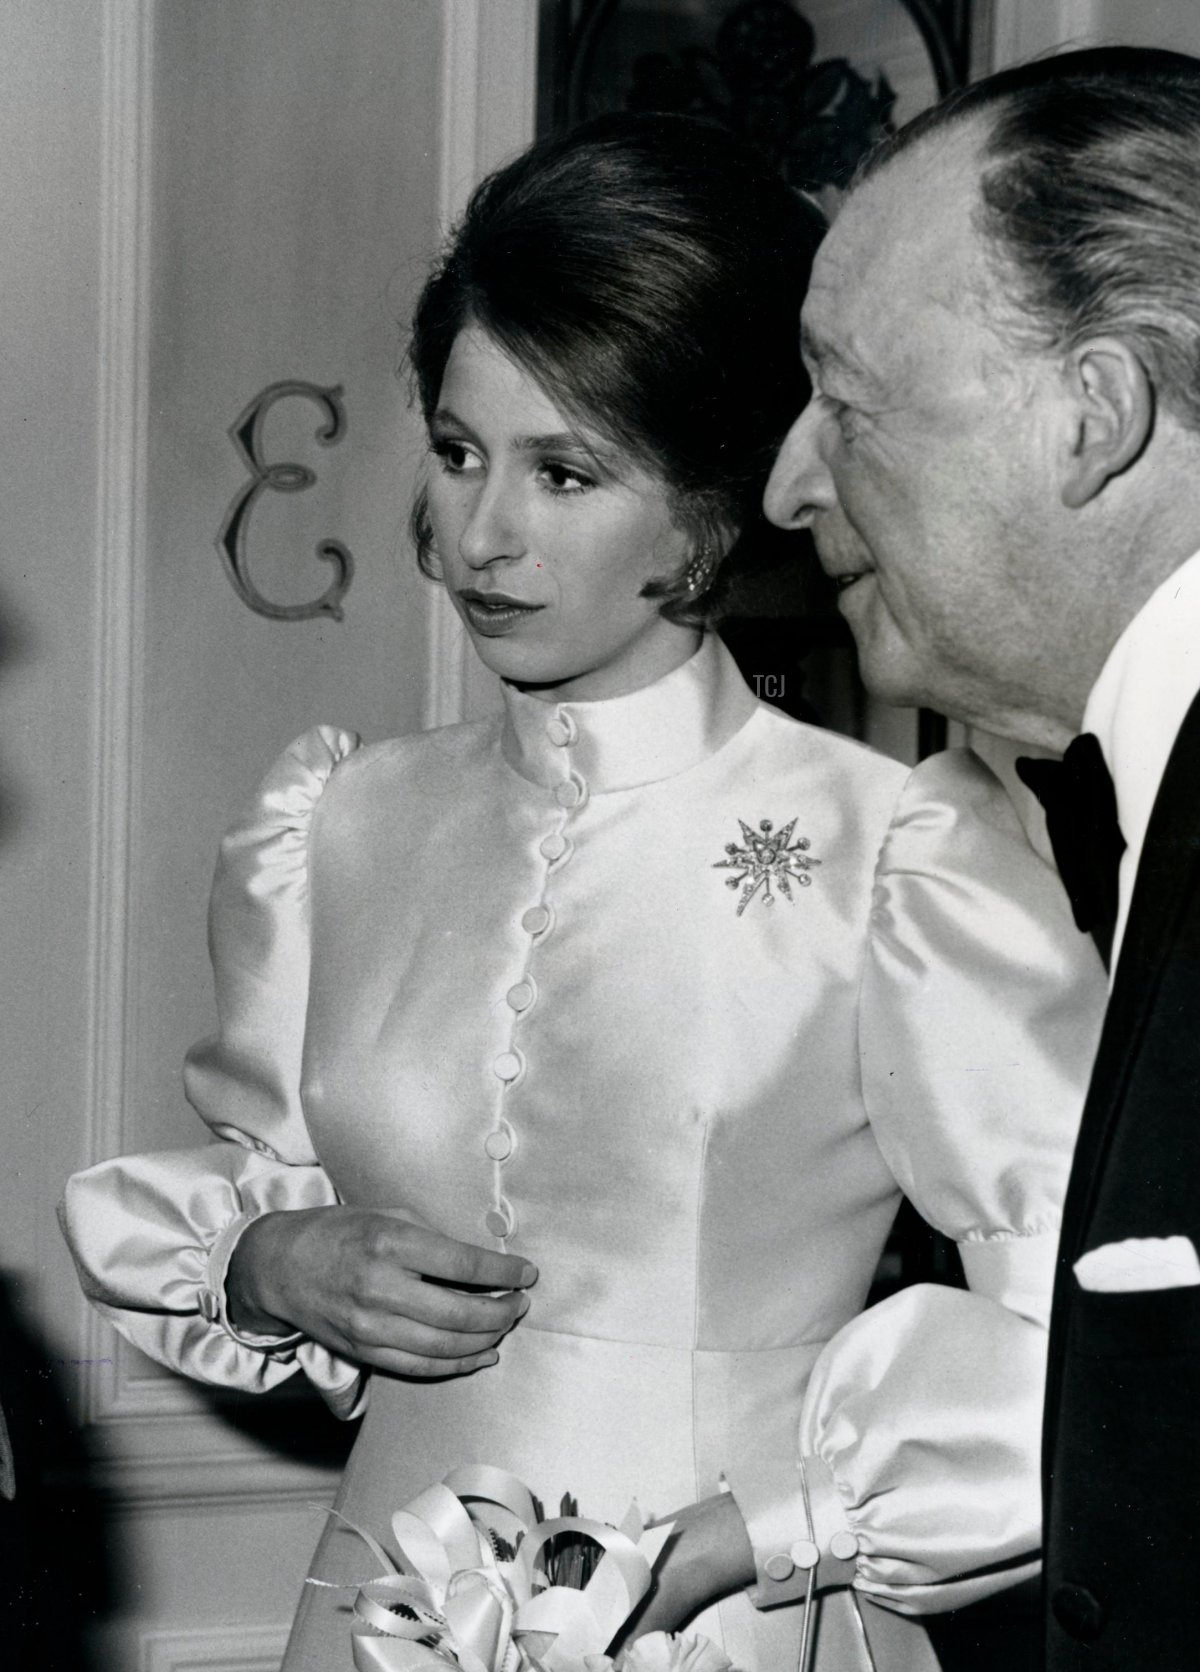 June 10, 1971 - Paris, France - MAURICE BEJART producer of the Belgian National 20th Century Ballet Company chatting with PRINCESS ANNE and the Belgian Ambassador to London, BARON JEAN VAN DEN BOSCH